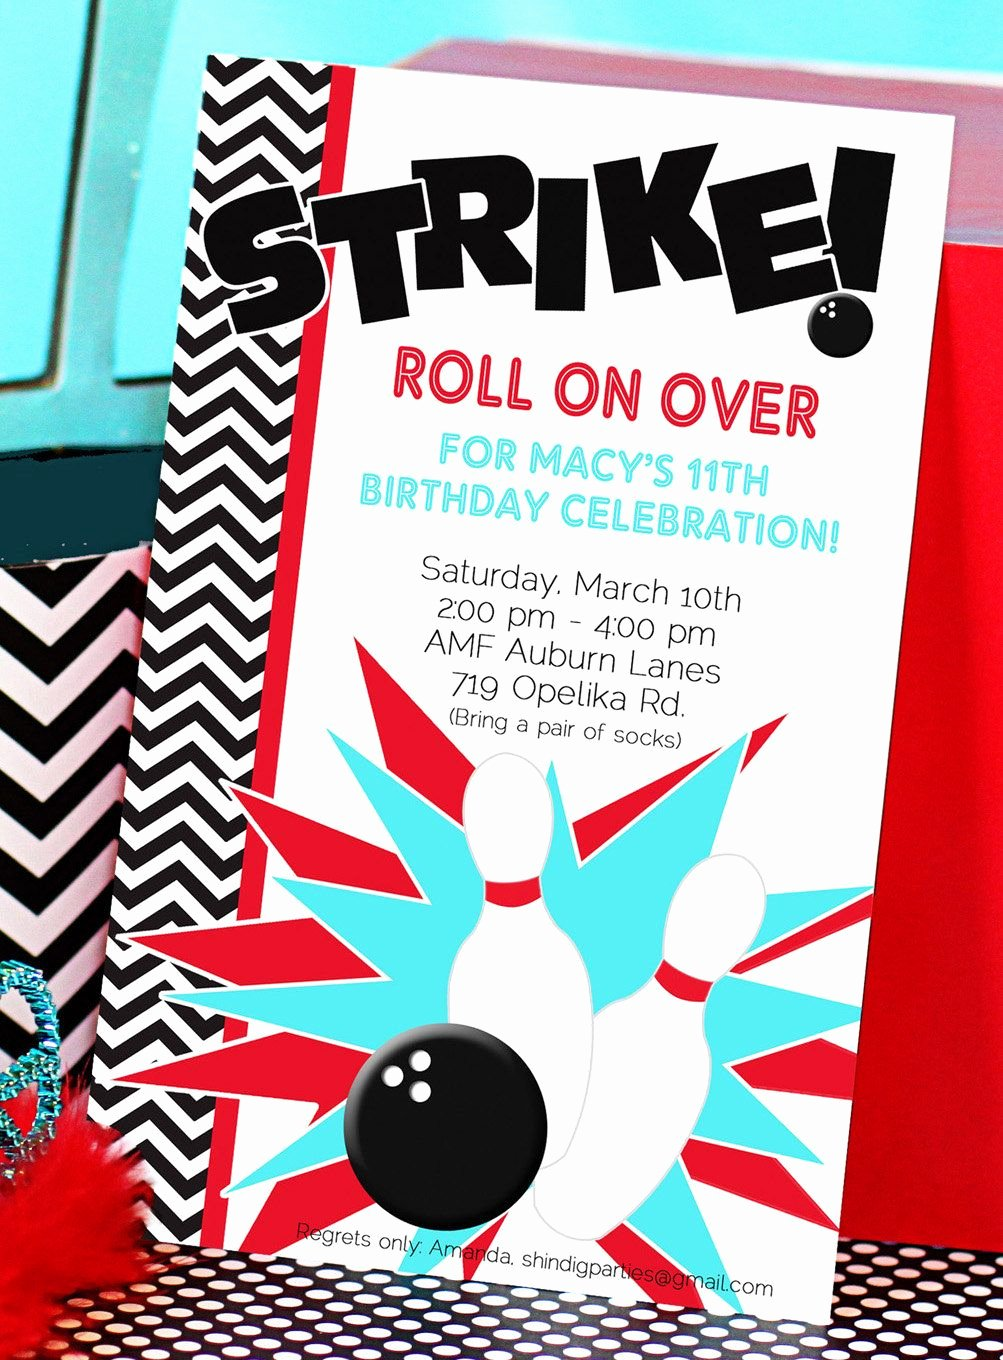 Bowling Party Invite Template Inspirational Bowling Party Invitation Bowling Birthday Invitation Bowling Invitation